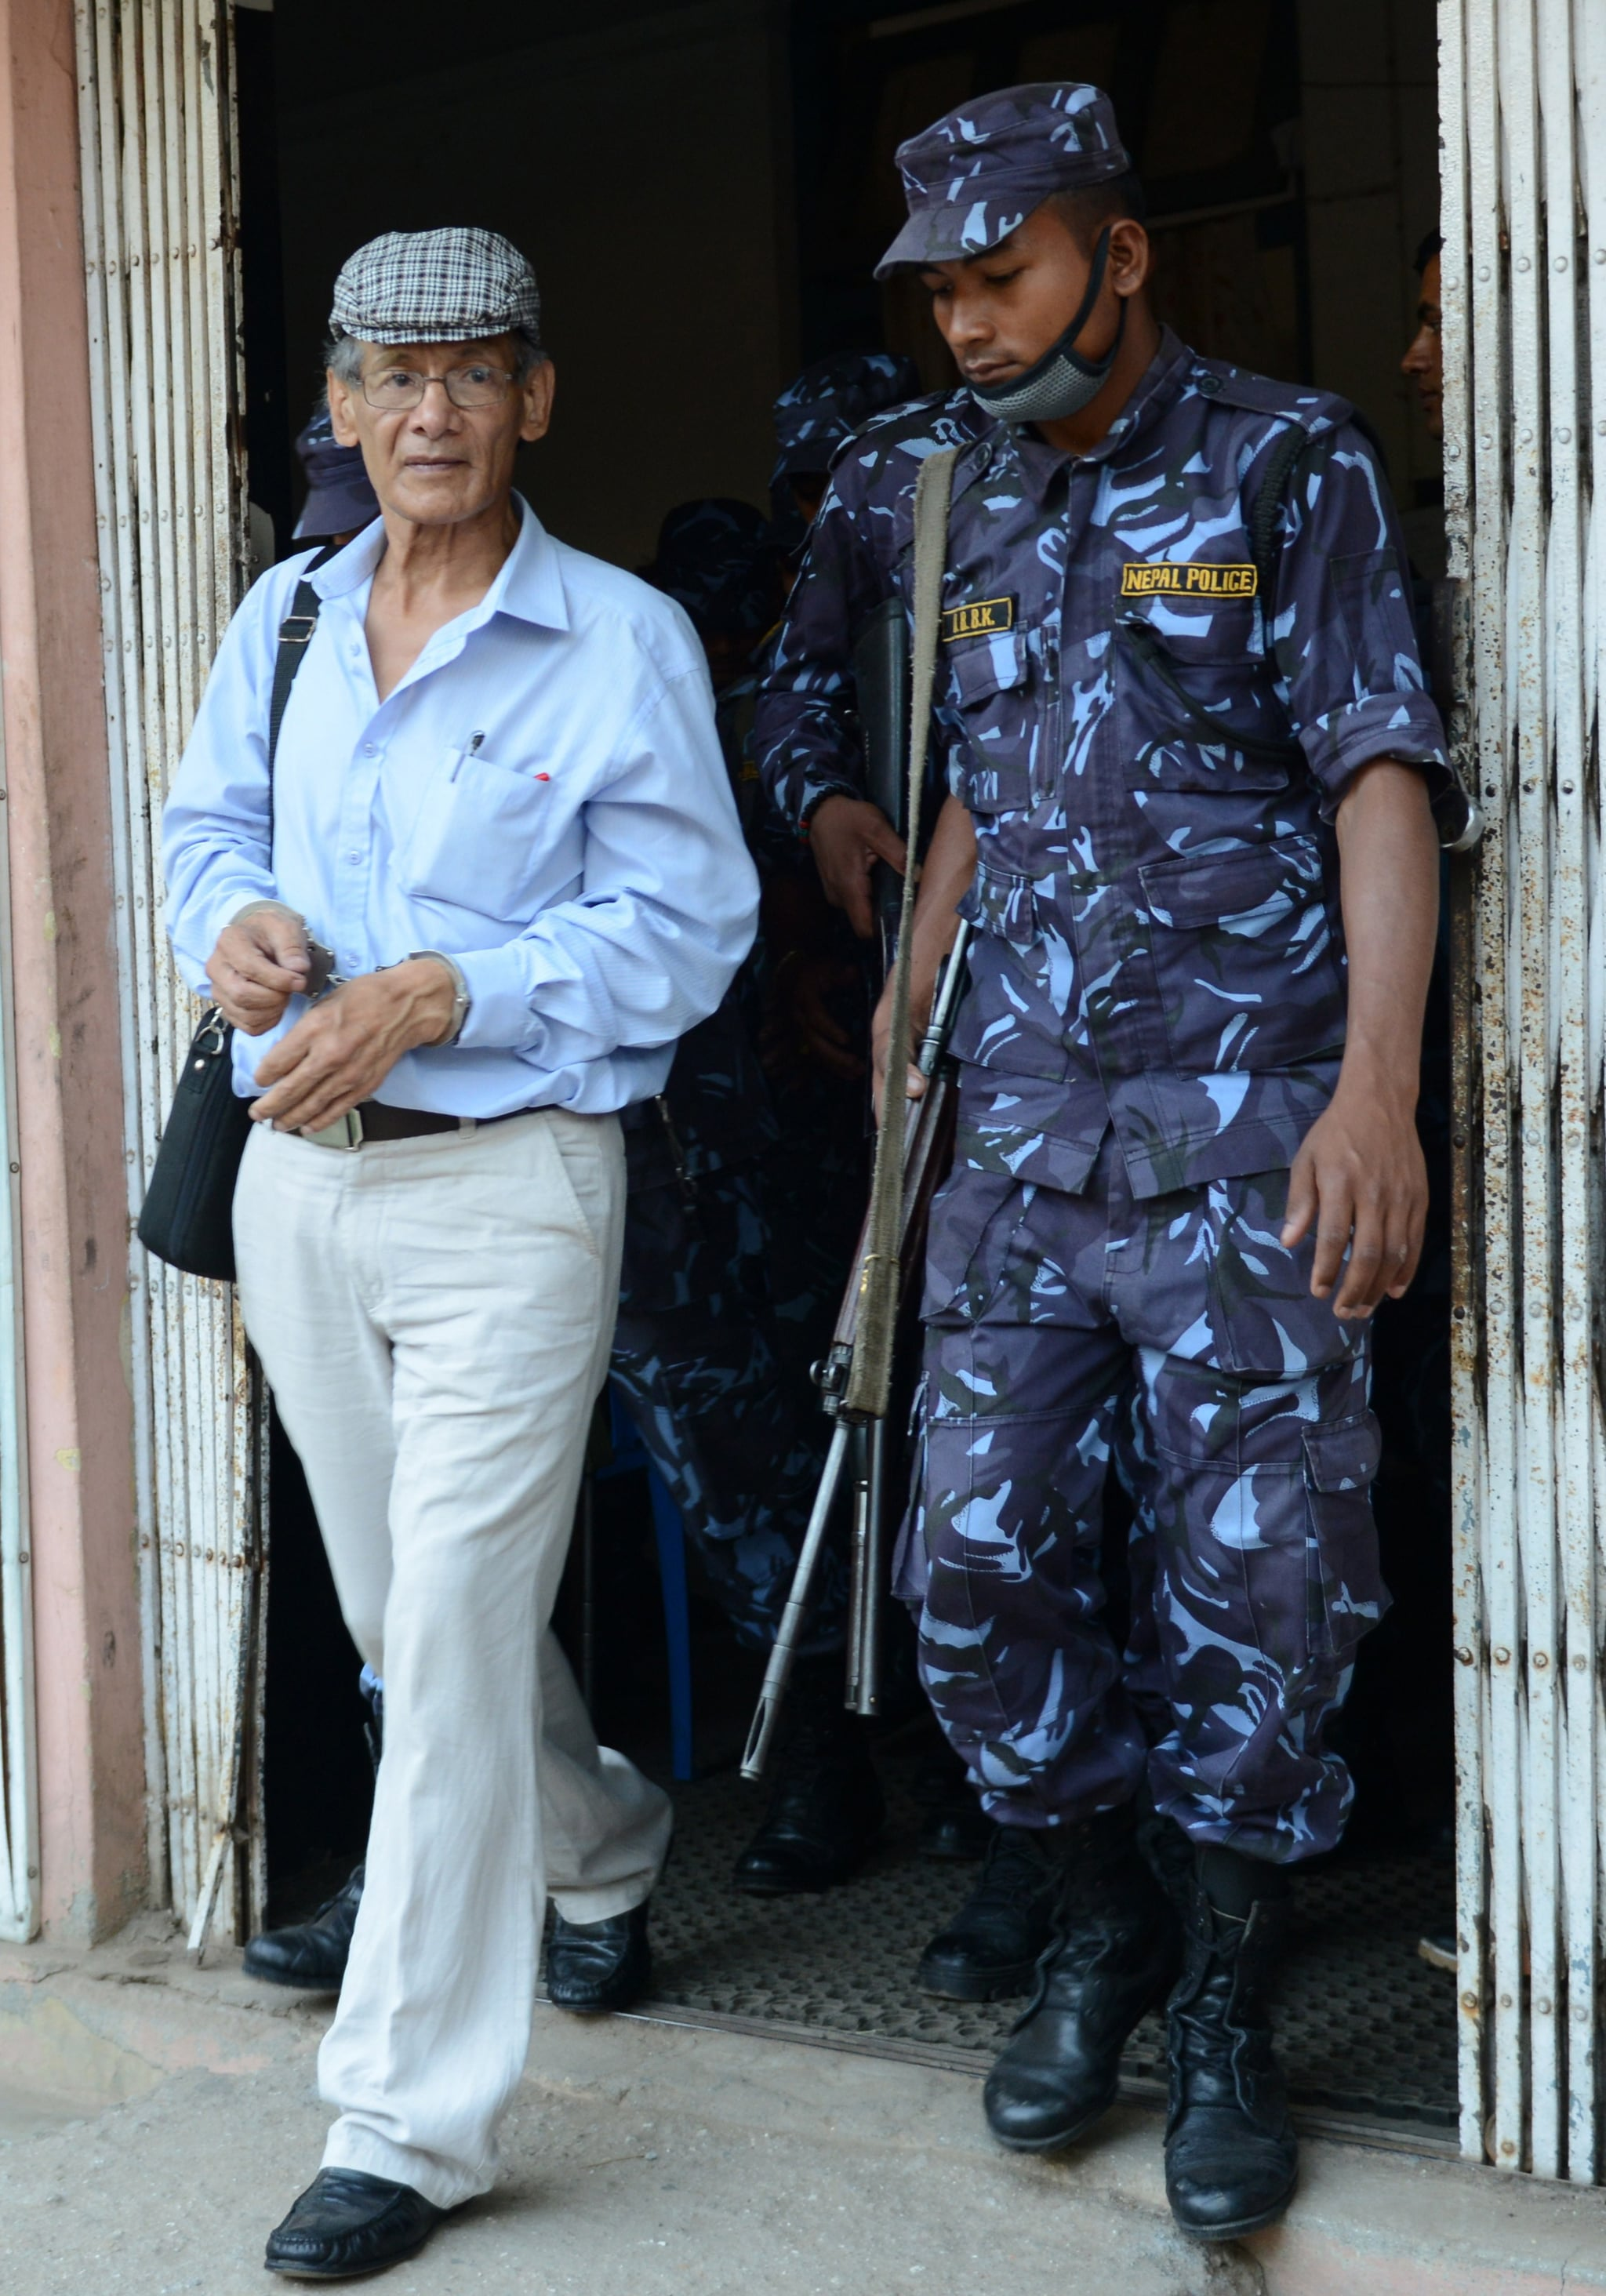 French serial killer Charles Sobhraj (L) is escorted by Nepalese police to a waiting vehicle after a hearing at a district court on a case related to the murder of Canadian backpacker Laurent Ormond Carriere, in Bhaktapur on June 12, 2014. Sobhraj, a French citizen who is serving a life sentence in Nepal for the murder of an American backbacker in 1975, has been linked with a string of killings across Asia in the 1970s, earning the nickname